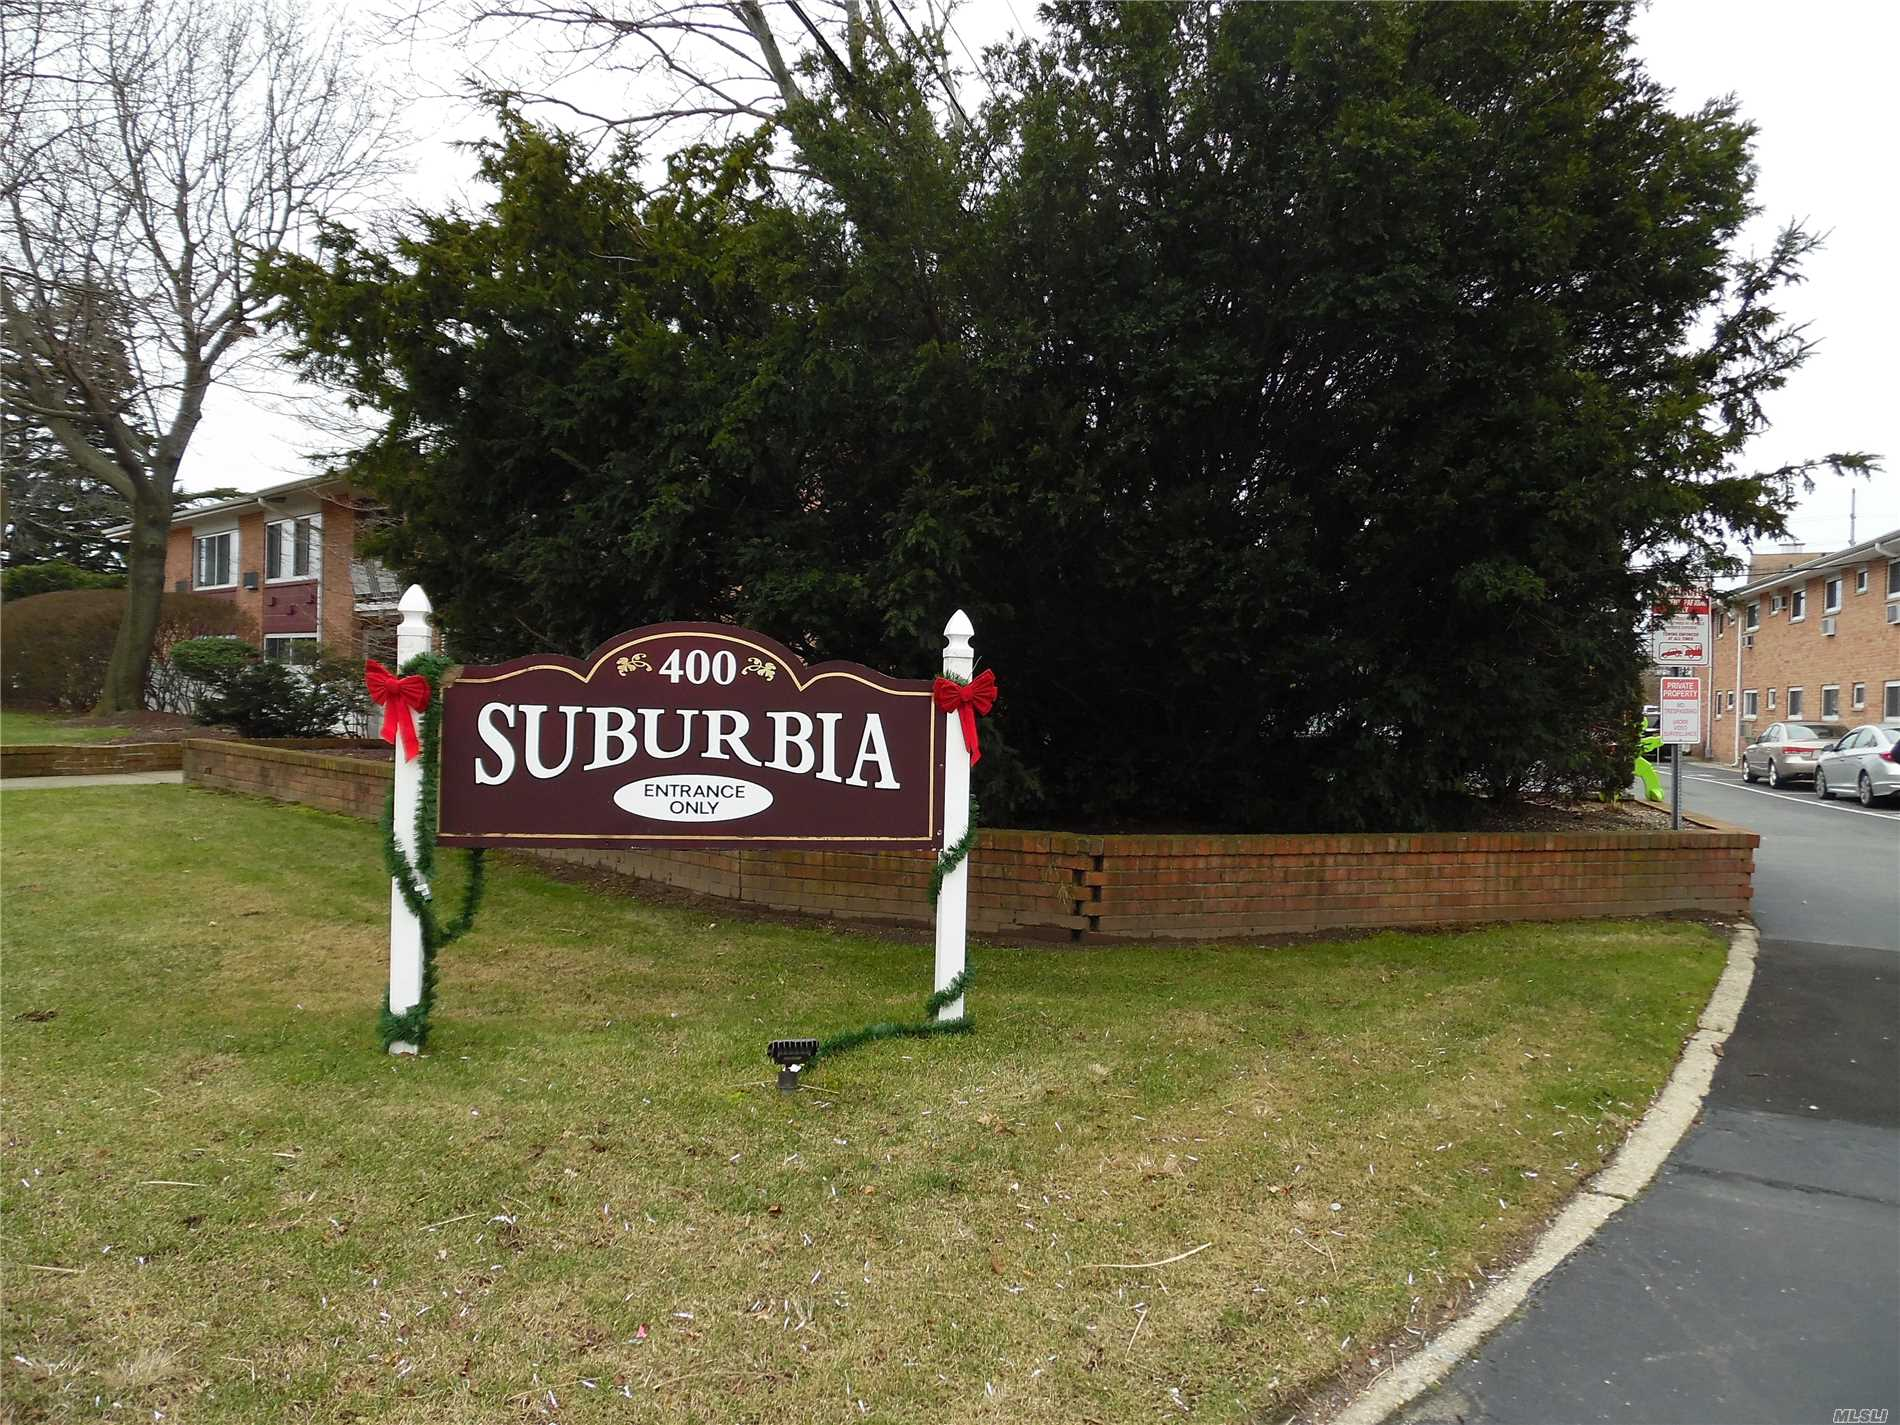 First Floor 1 Bedroom Unit - Only Co-Op In Farmingdale With An Igp! Well Maintained Bldg - Entire Complex All New Windows (2017) , Additional Security Cameras In Pkg Lot And Walkways. Free Bike Storage, Playground Bbq-Grill Area Laundry Room - Why Rent?